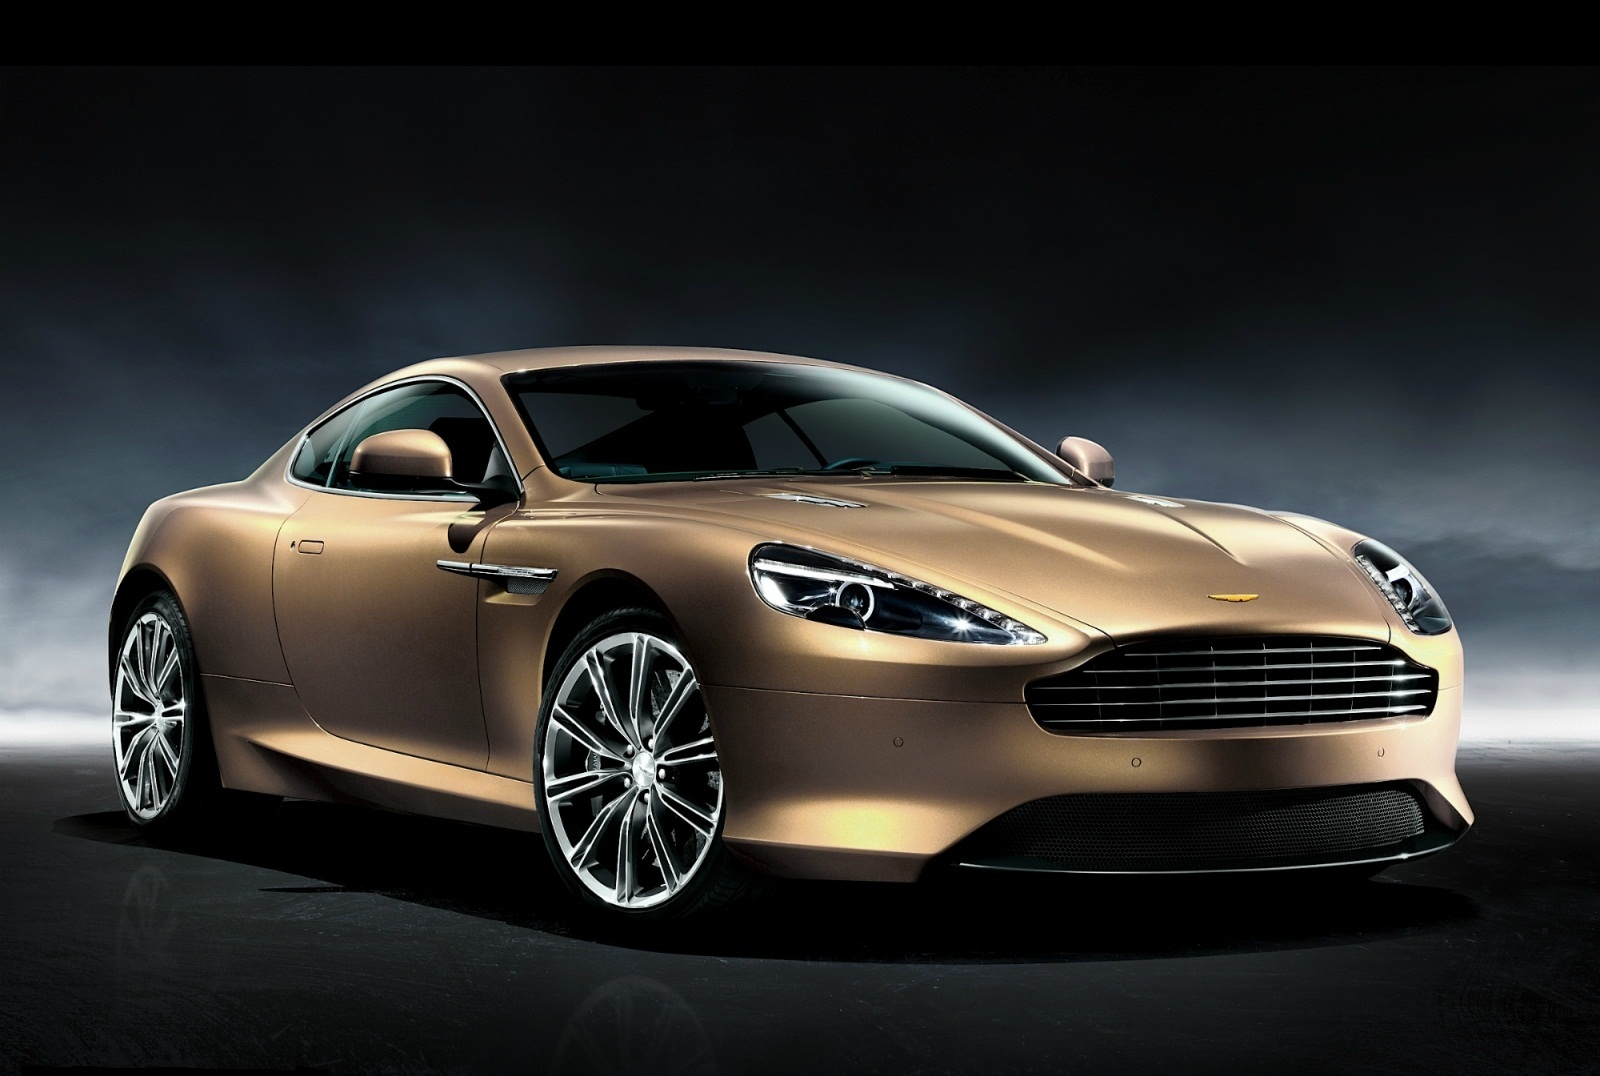 Sport Car Garage: Aston Martin Virage Dragon 88 Limited Edition 2012